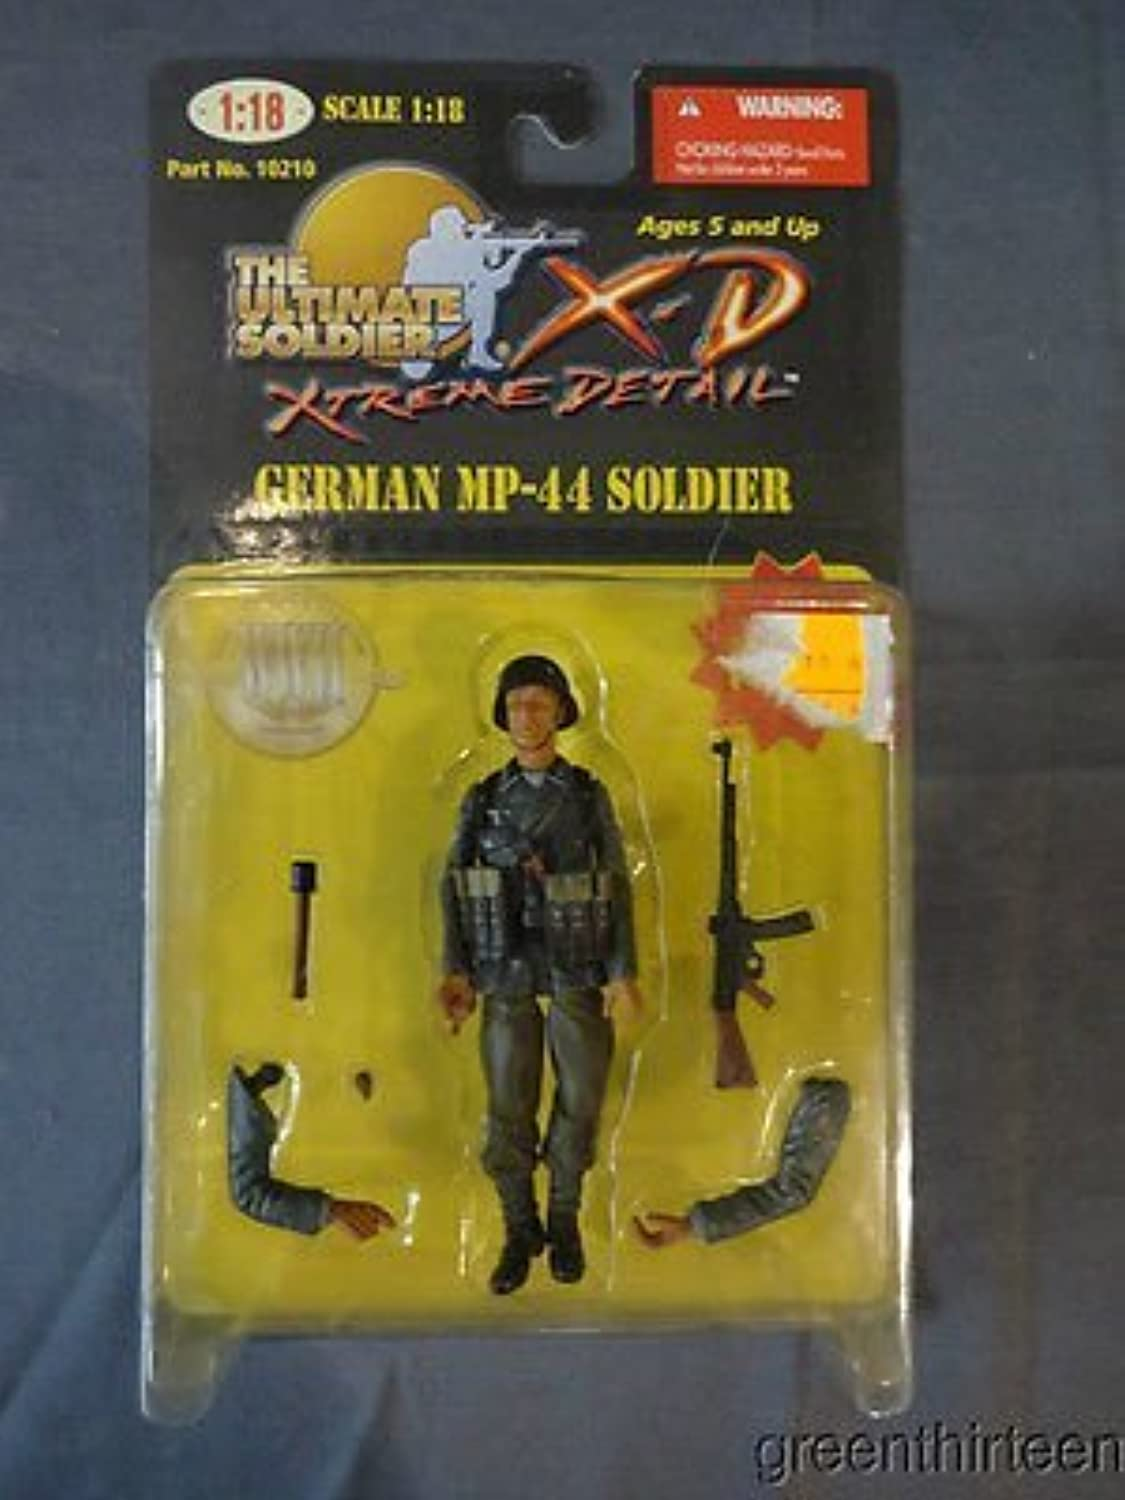 The Ultimate Soldier German MP44 Soldier Scale 1 18